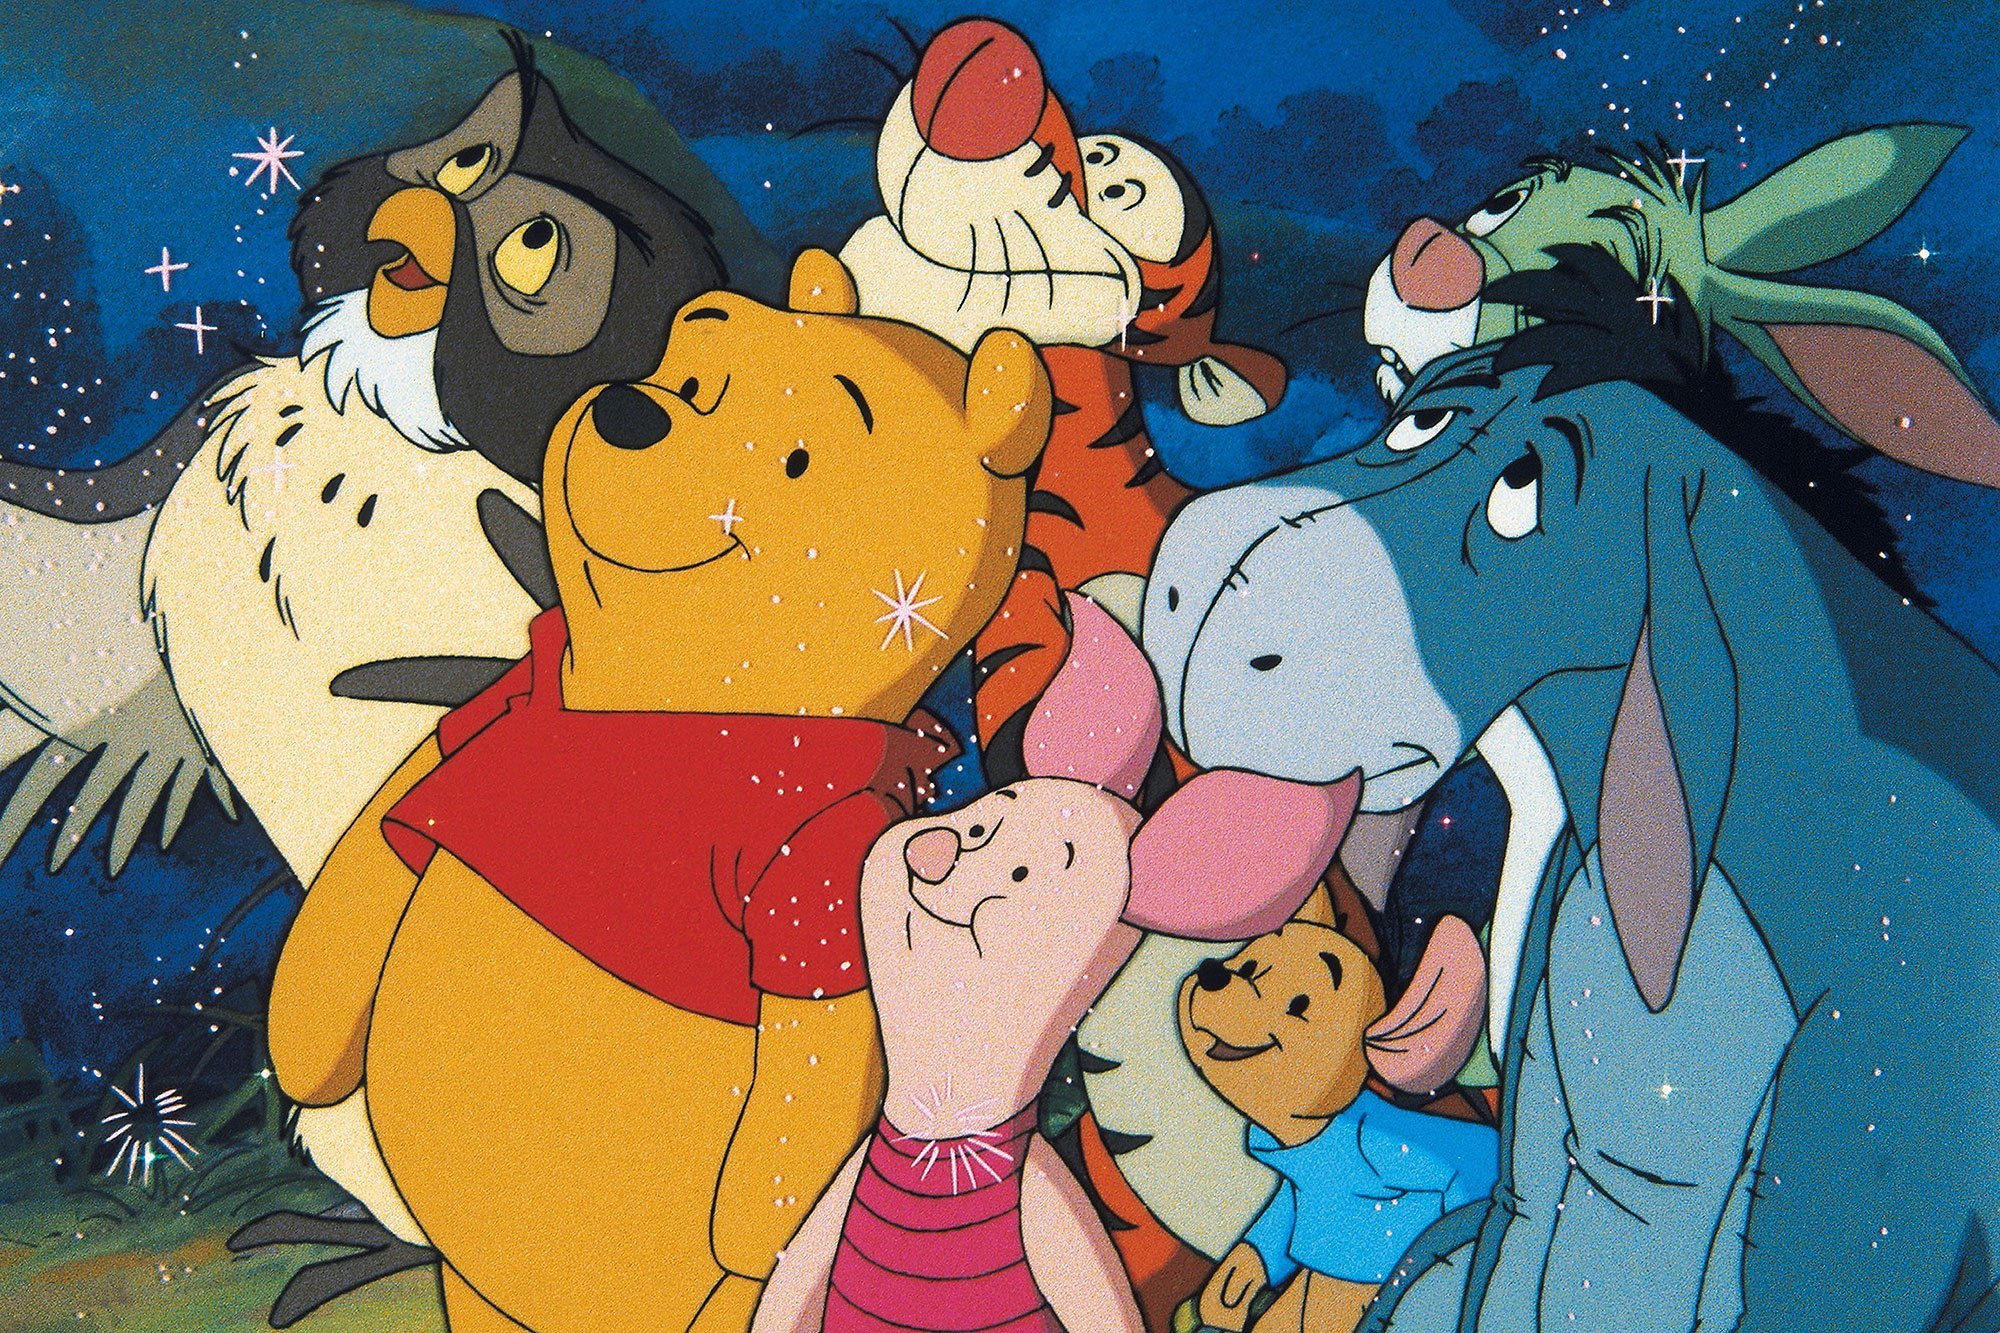 Winnie The Pooh Quotes About Friendship Captivating Best Quotes On Friendship From Winniethepooh  Southern Living